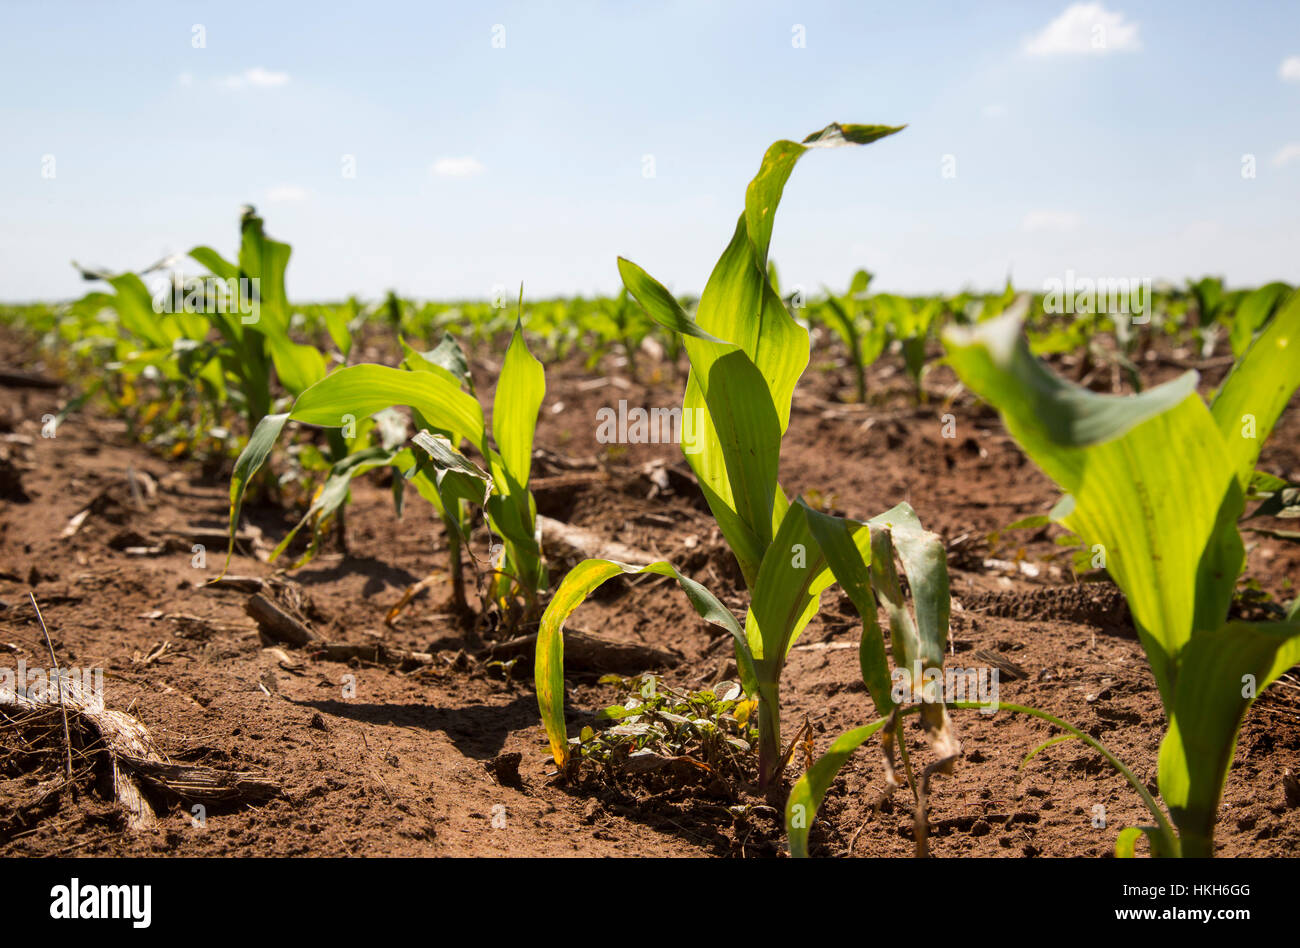 Low angle view of young maize plants (Zea mays) growing in a Mielie field on the highveld. - Stock Image